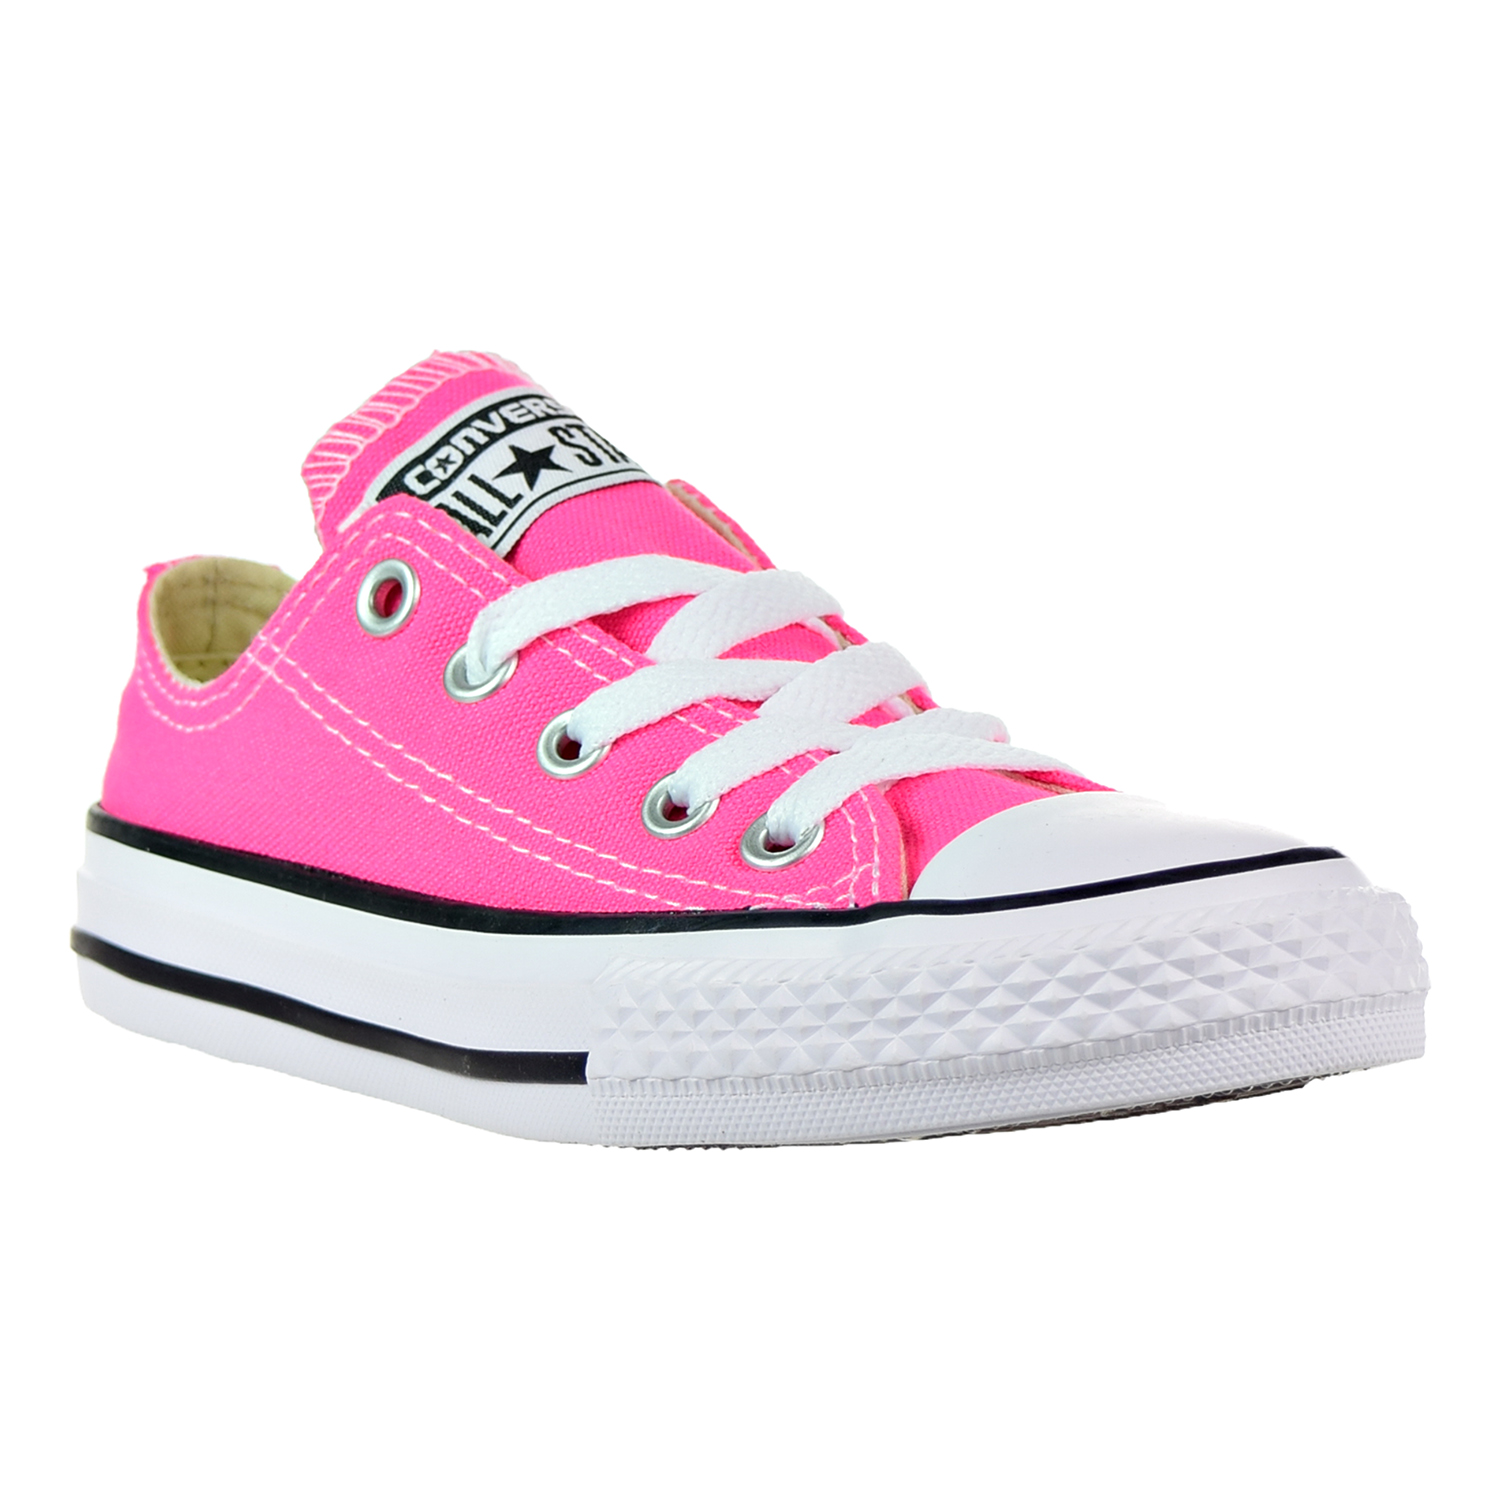 Converse Chuck Taylor All Star Ox Little 357646f Kid's Shoes Pink Pow/White 357646f Little 72334b